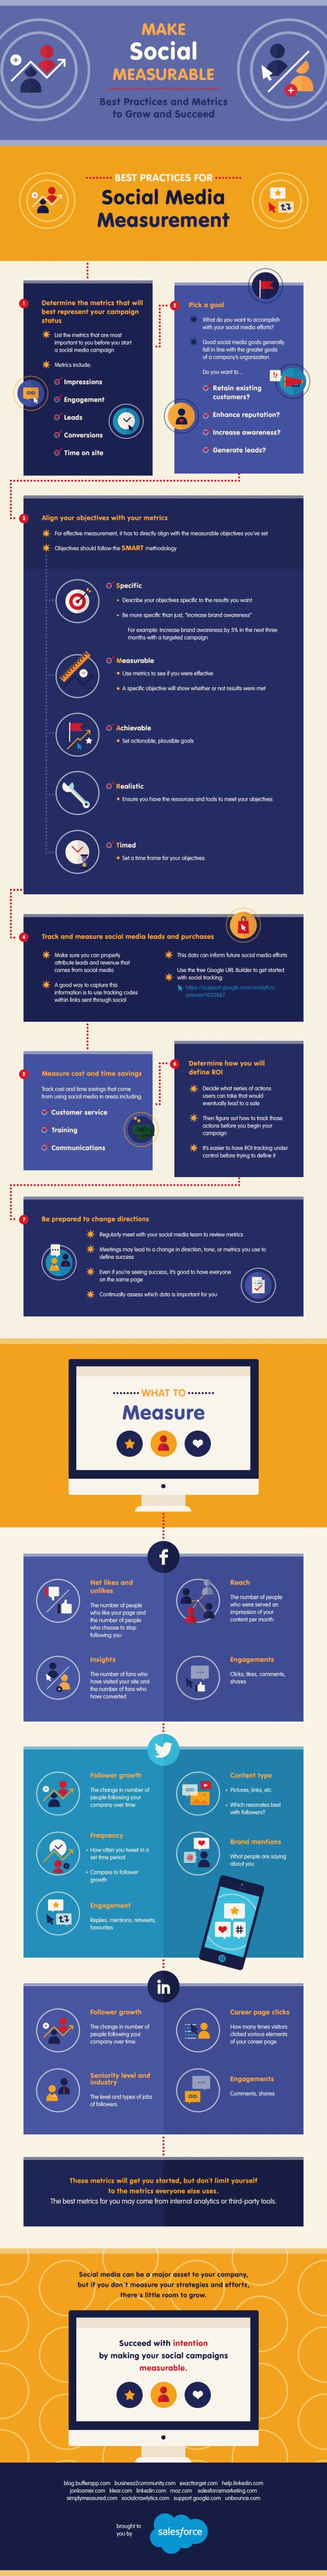 Make Social Measurable: Best Practices and Metrics to Grow and Succeed